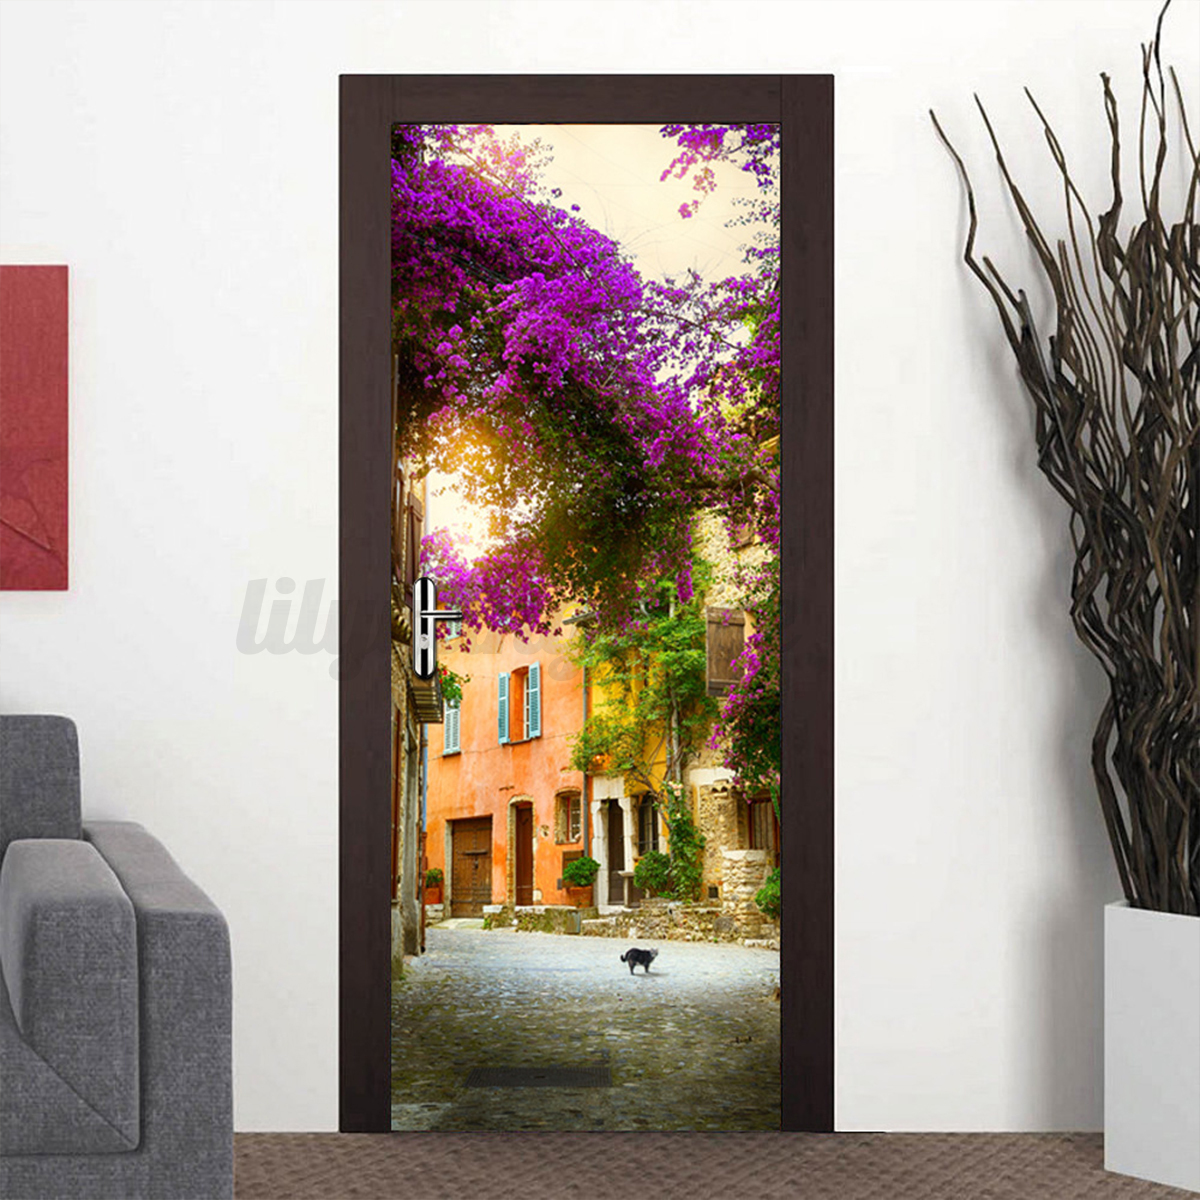 3d door wall fridge sticker decals wrap mural scenery self for Home decor 3d stickers